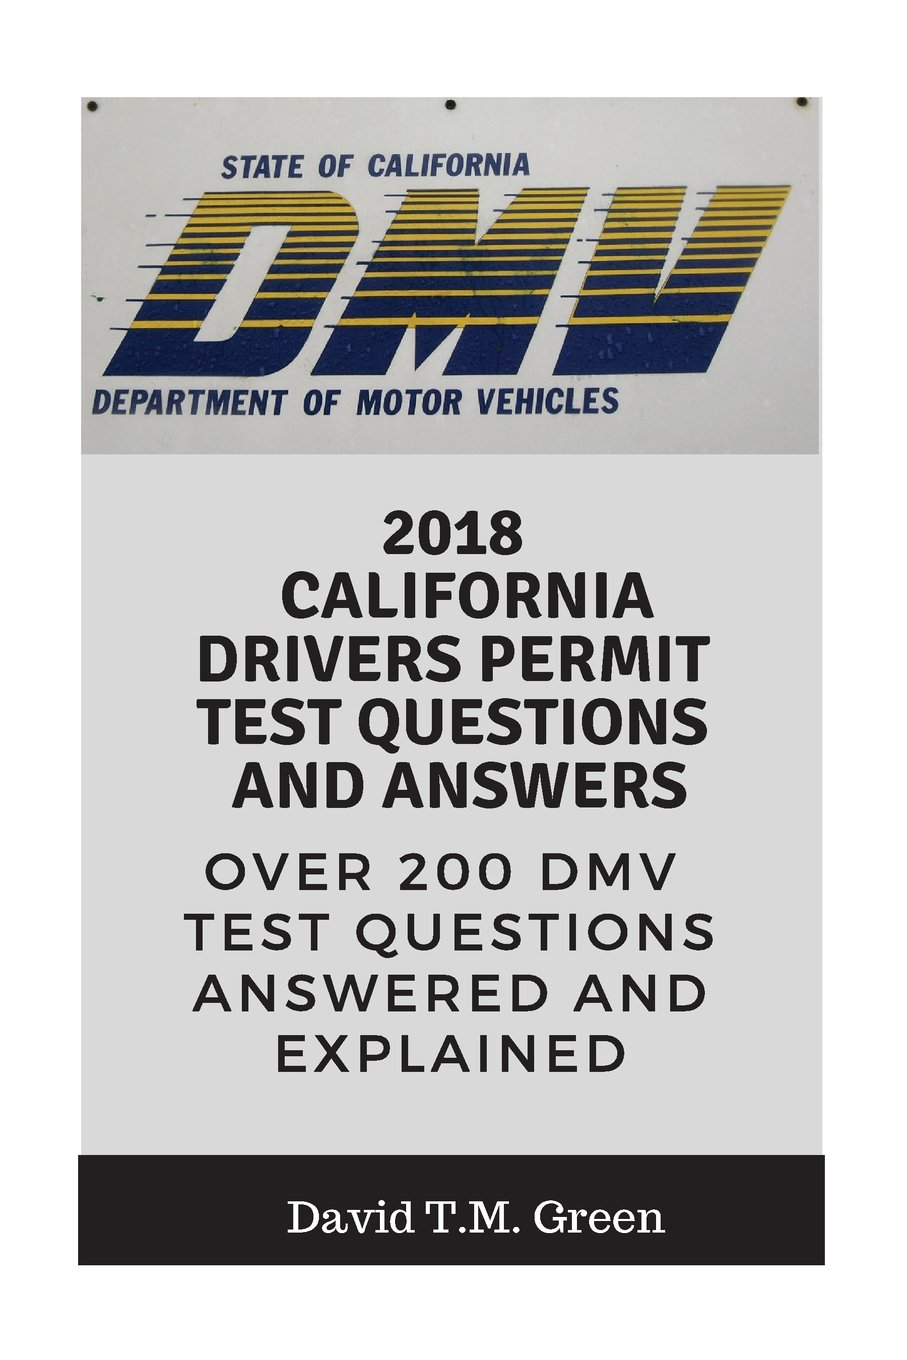 How Many Questions Are On The Permit Test >> 2018 California Drivers Permit Test Questions And Answers